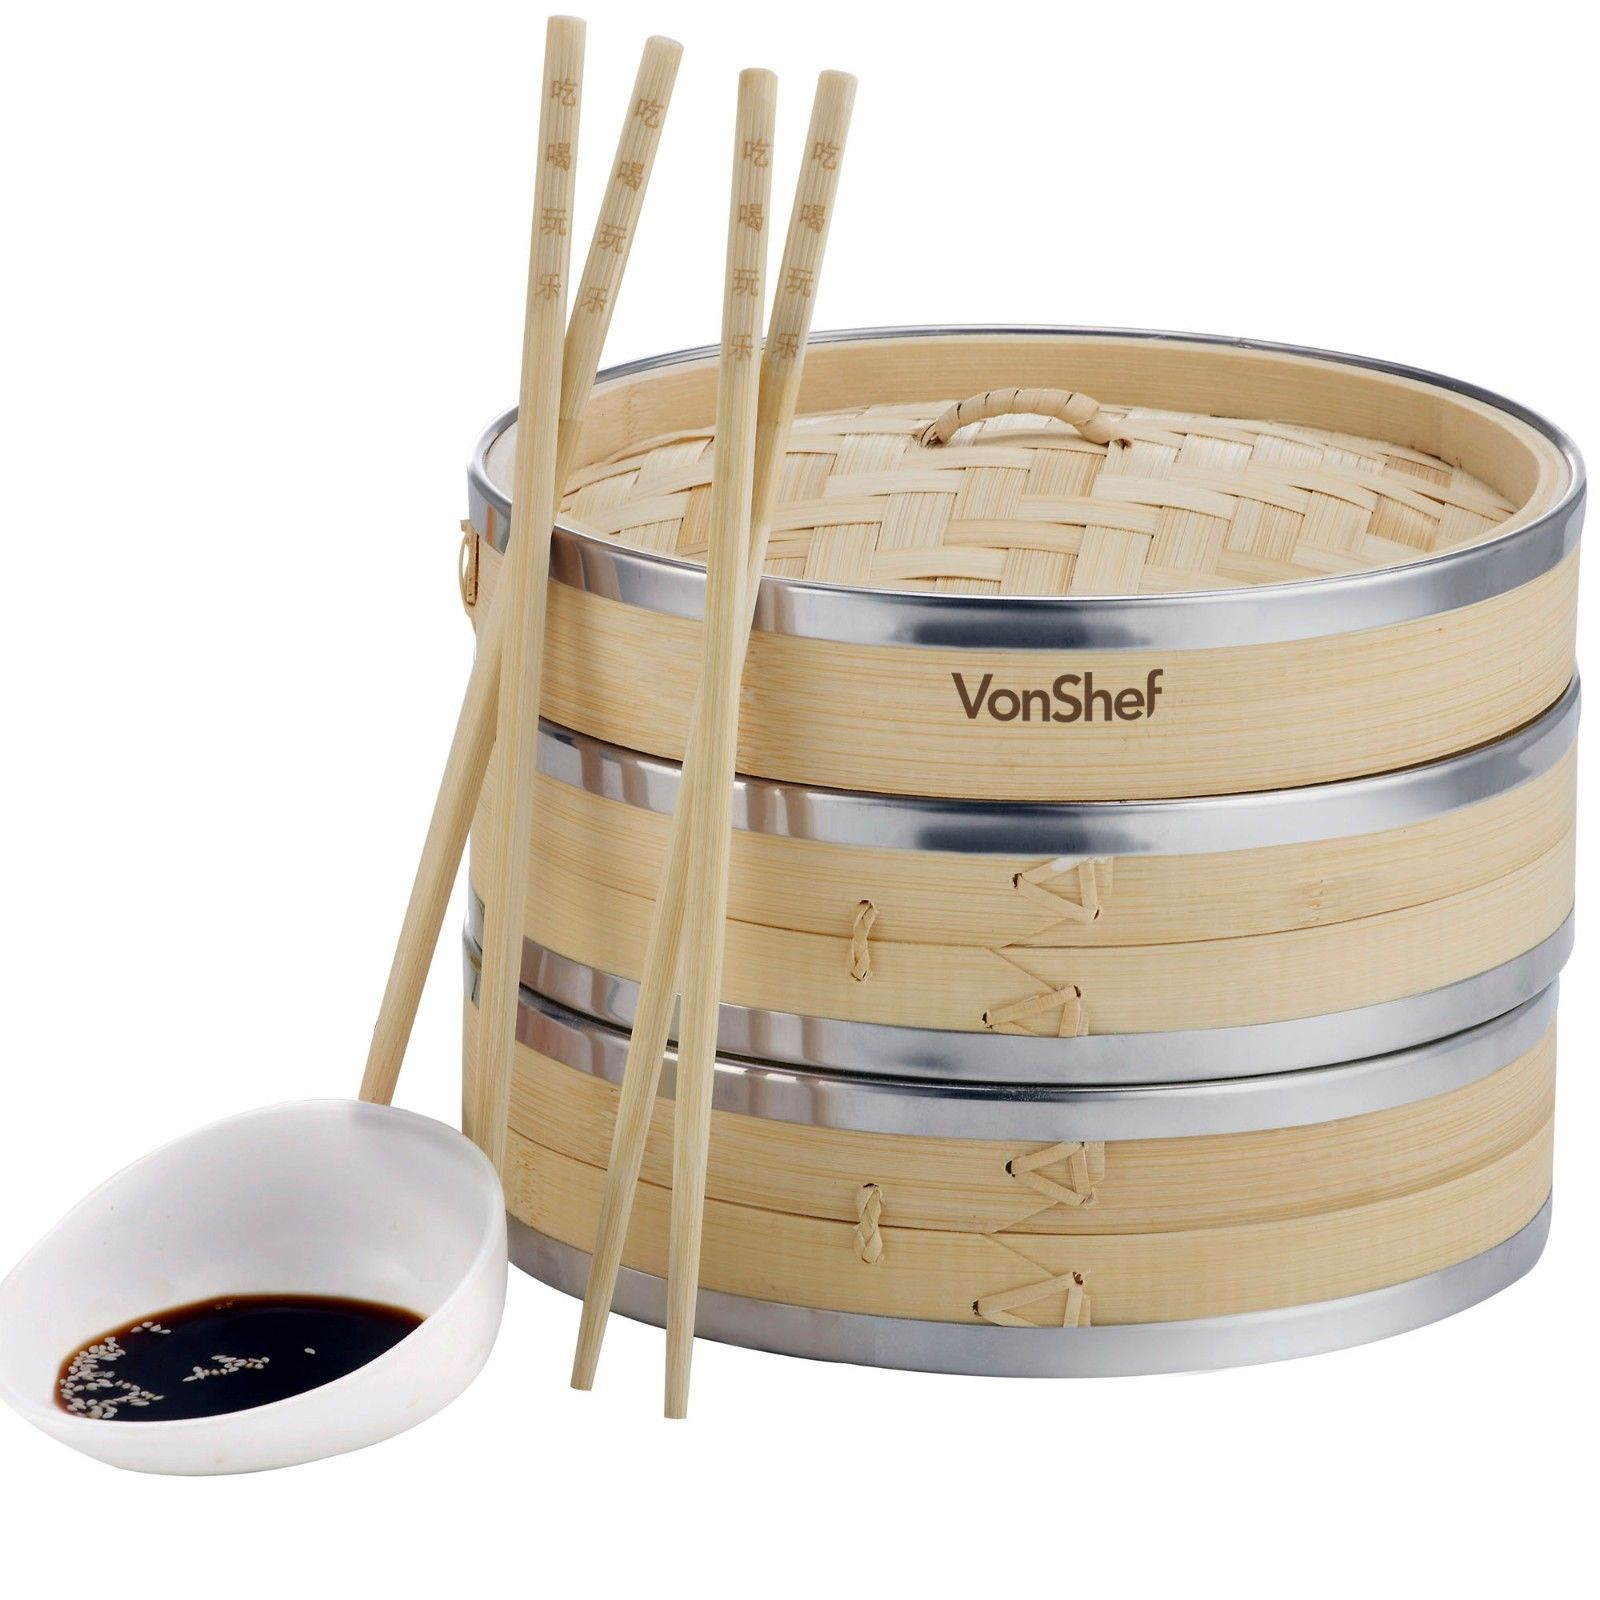 Moaere Natural Bamboo Steamer Basket Premium 2 Tier Food Cooker with Stainless Steel Banding for Steaming Dim Sum Dumplings Buns